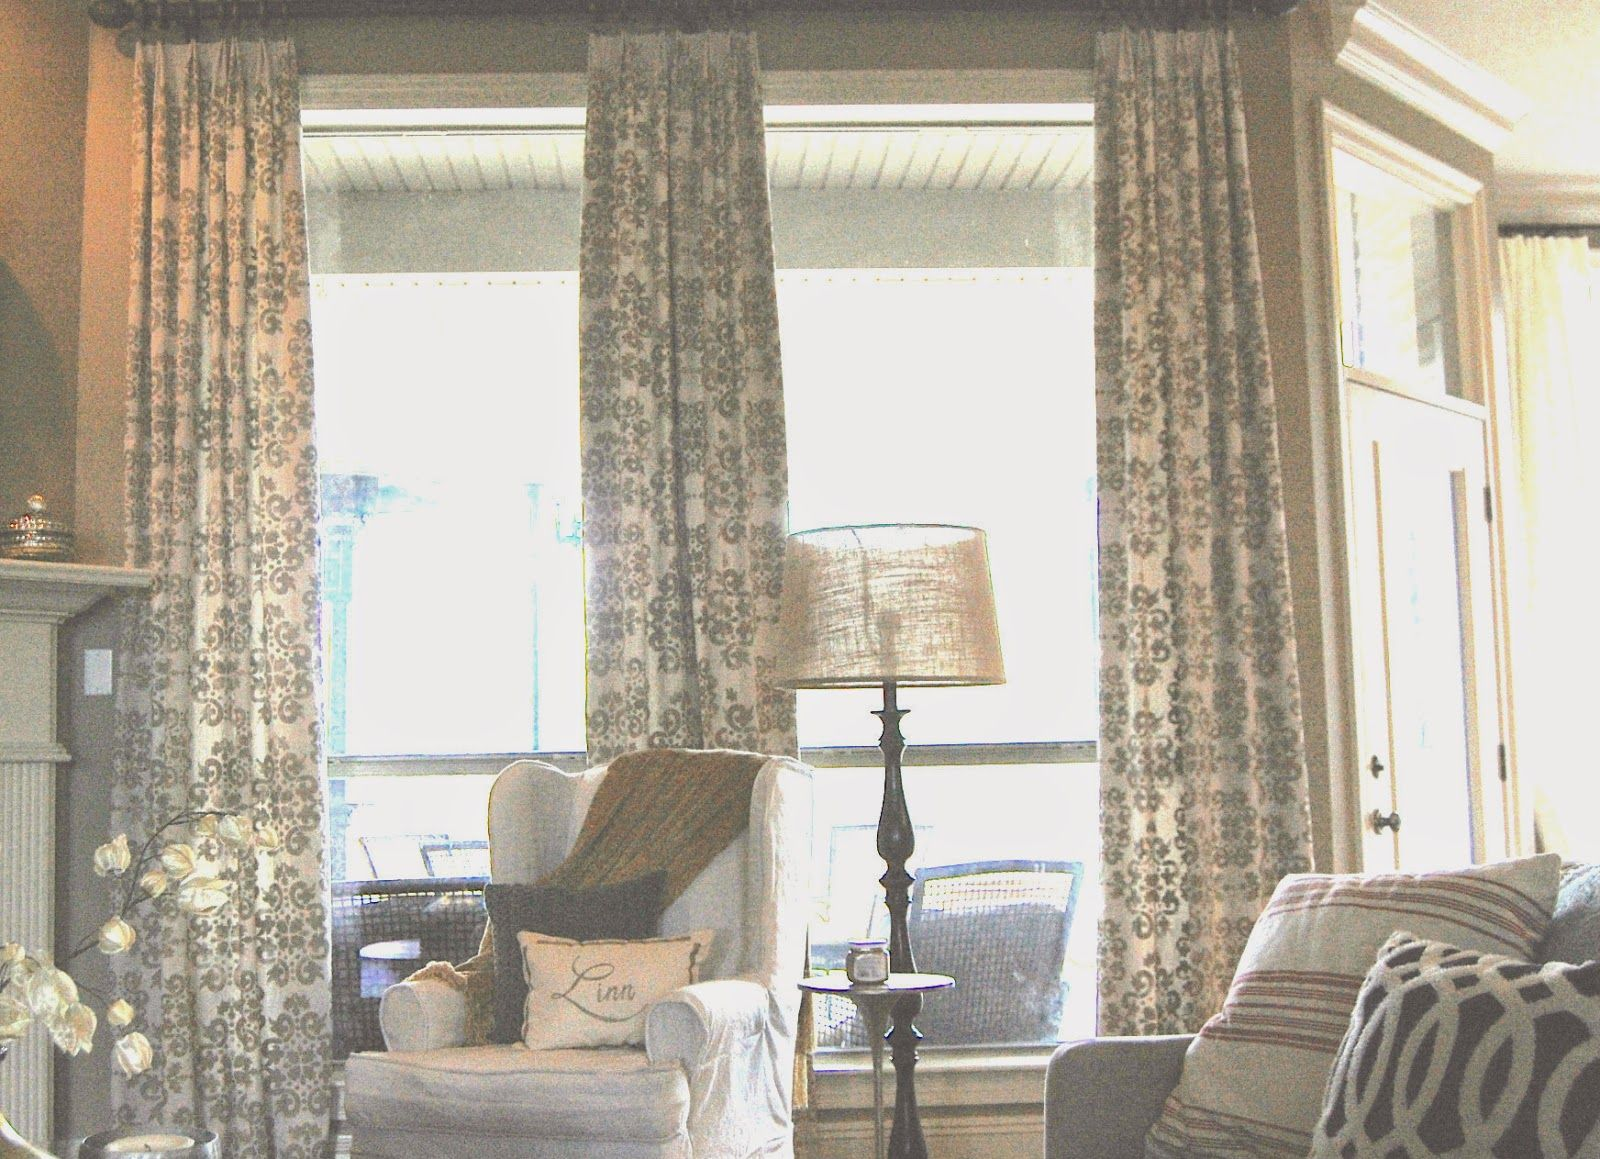 Kitchen nook window treatments  hello all i hope you had a great weekend i have an exciting